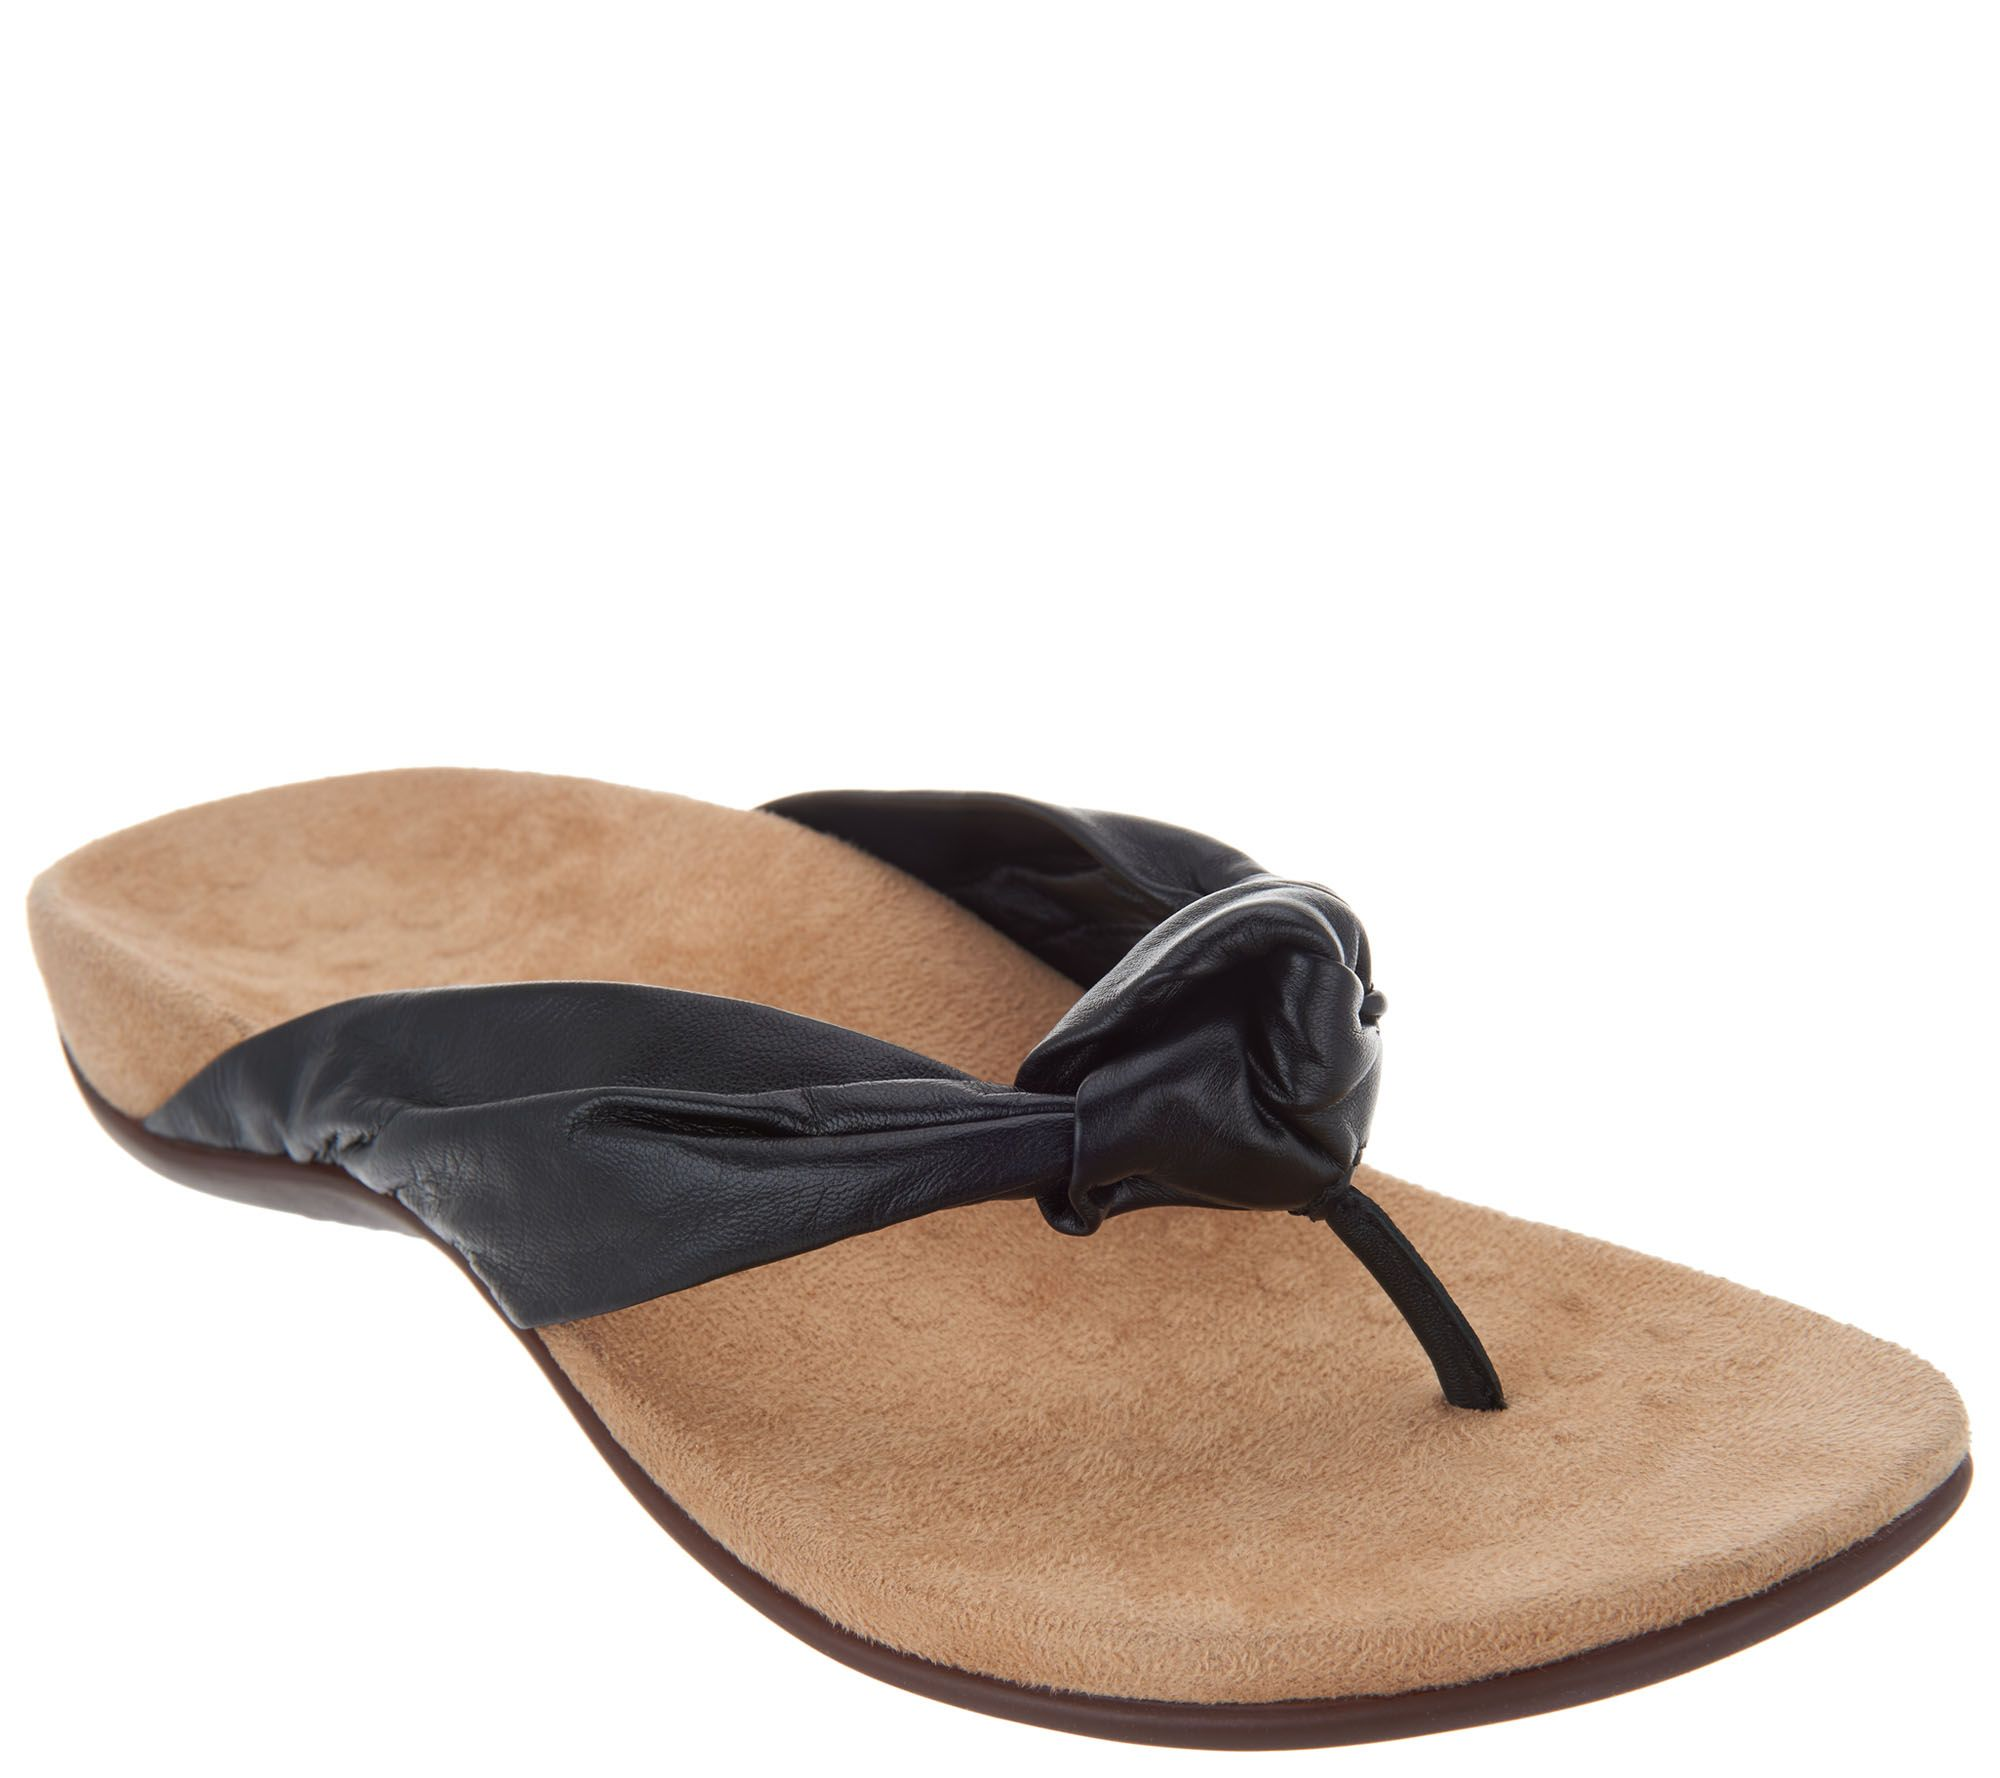 3e342efff44f Vionic Leather Knotted Thong Sandals - Pippa - Page 1 — QVC.com